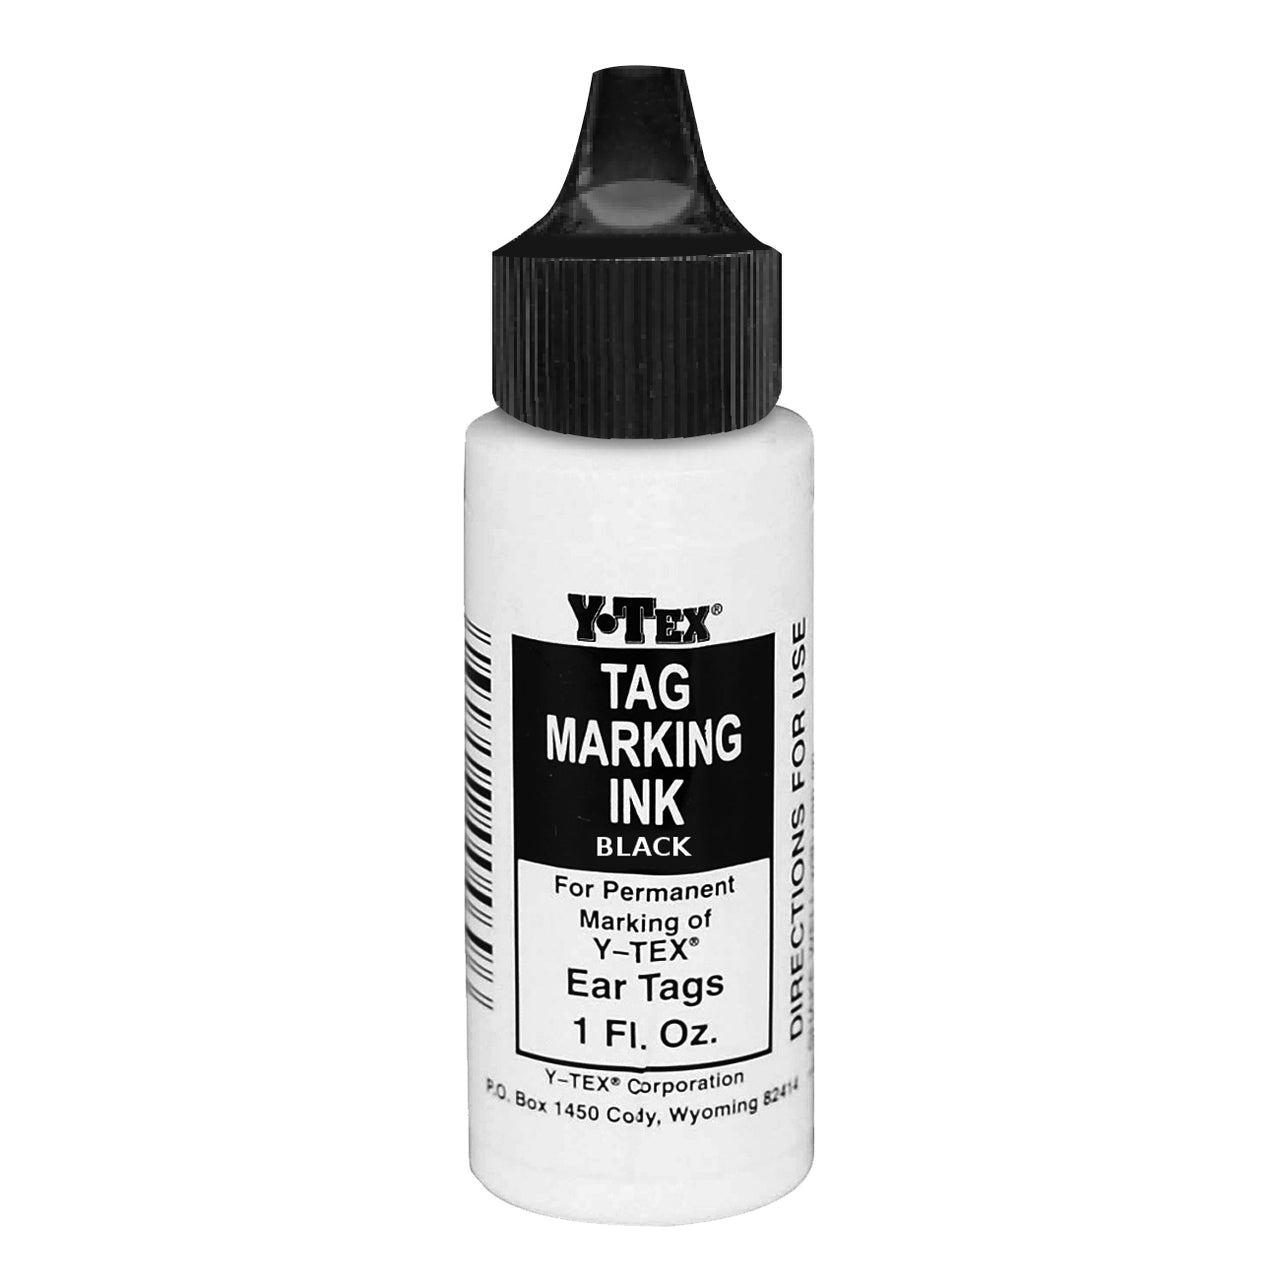 Y-Tex tag marking ink 1 fluid oz (Black)